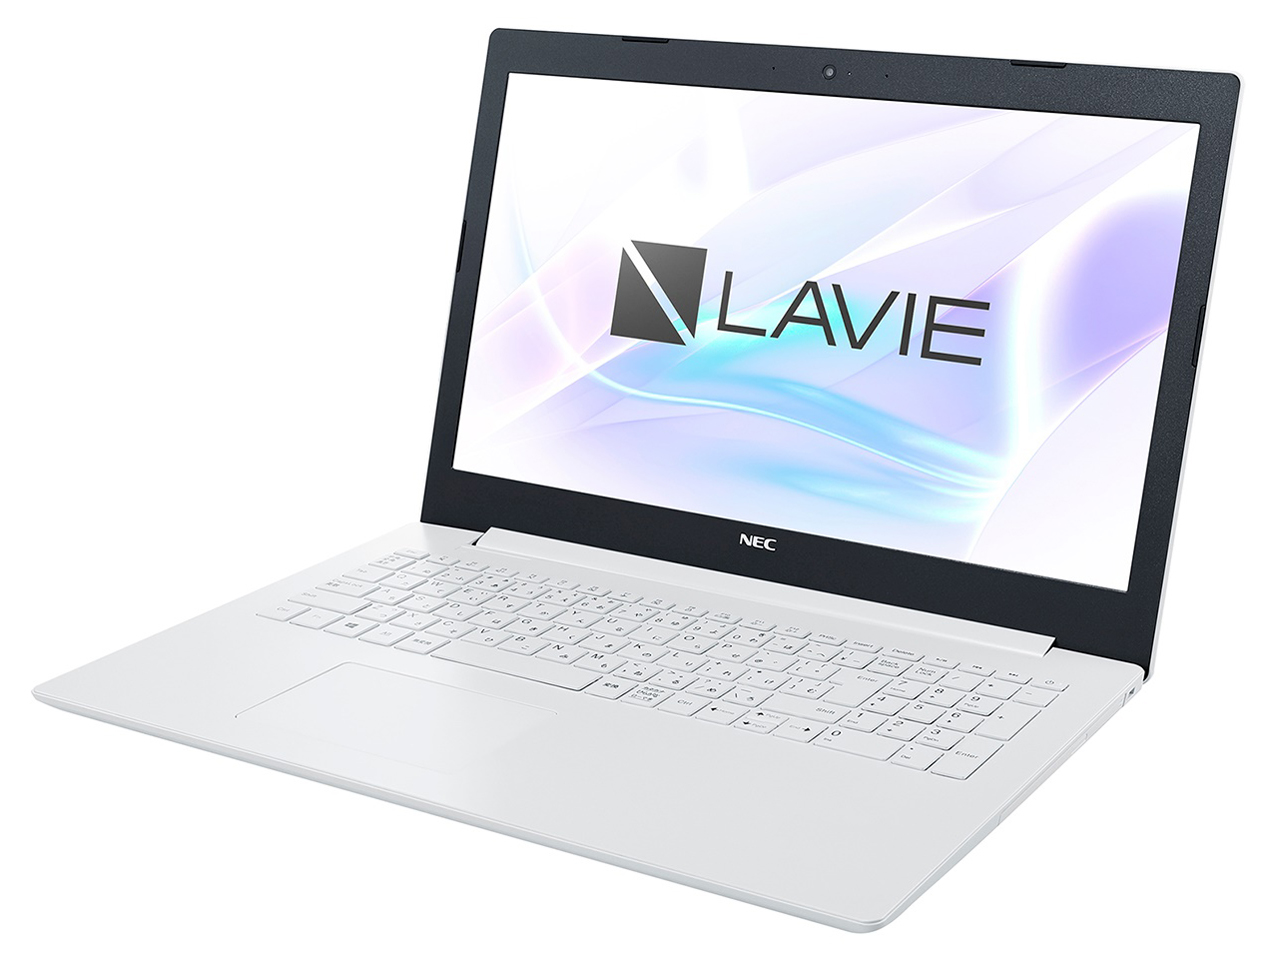 LAVIE Smart NS PC-SN186 Core i7 8GB HDD1TB+Optane Office付 2019年3月発売モデル